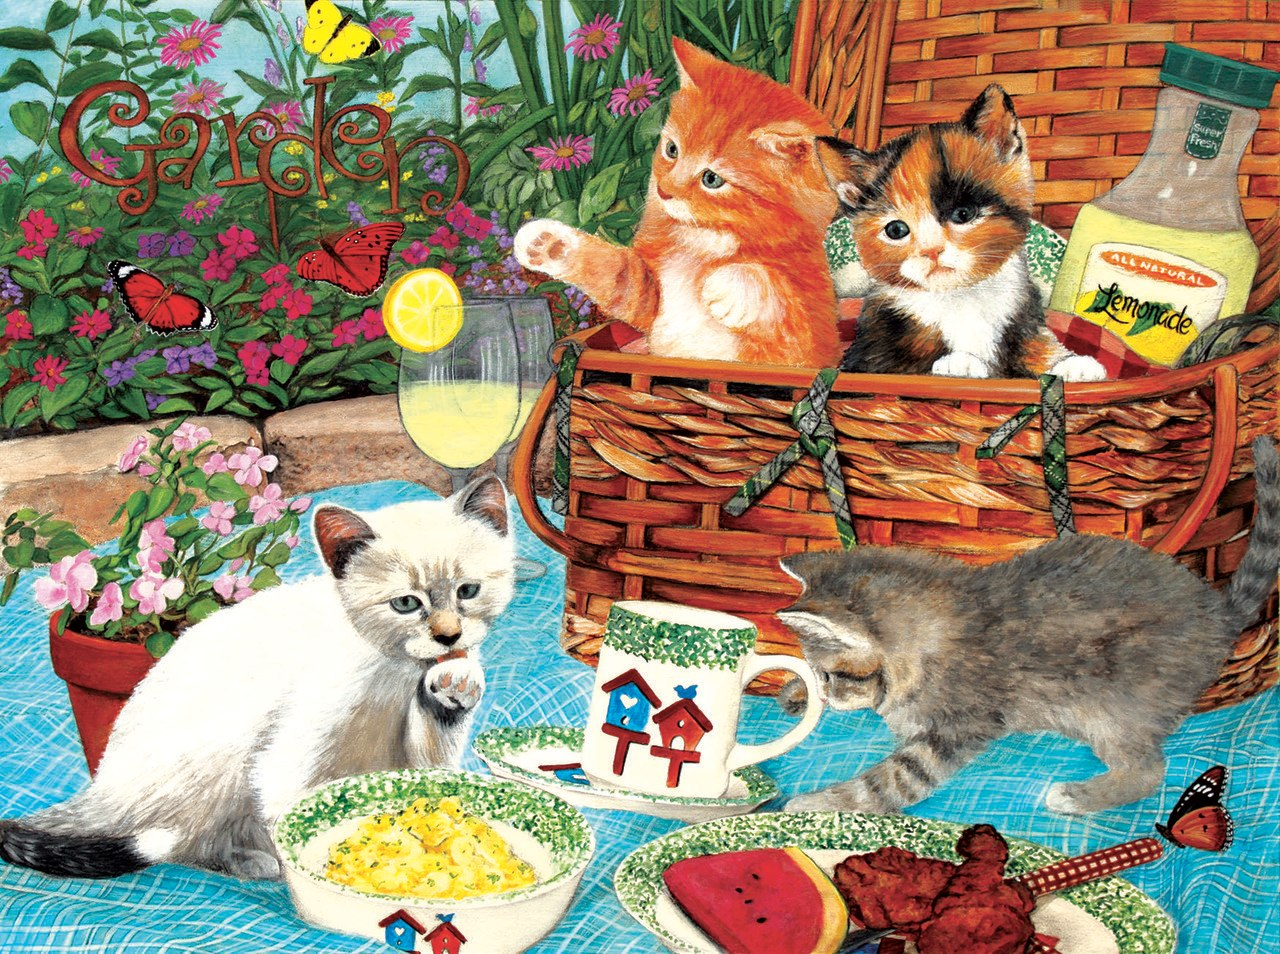 Picnic Kittens - 1000pc Jigsaw Puzzle By Sunsout  			  					NEW